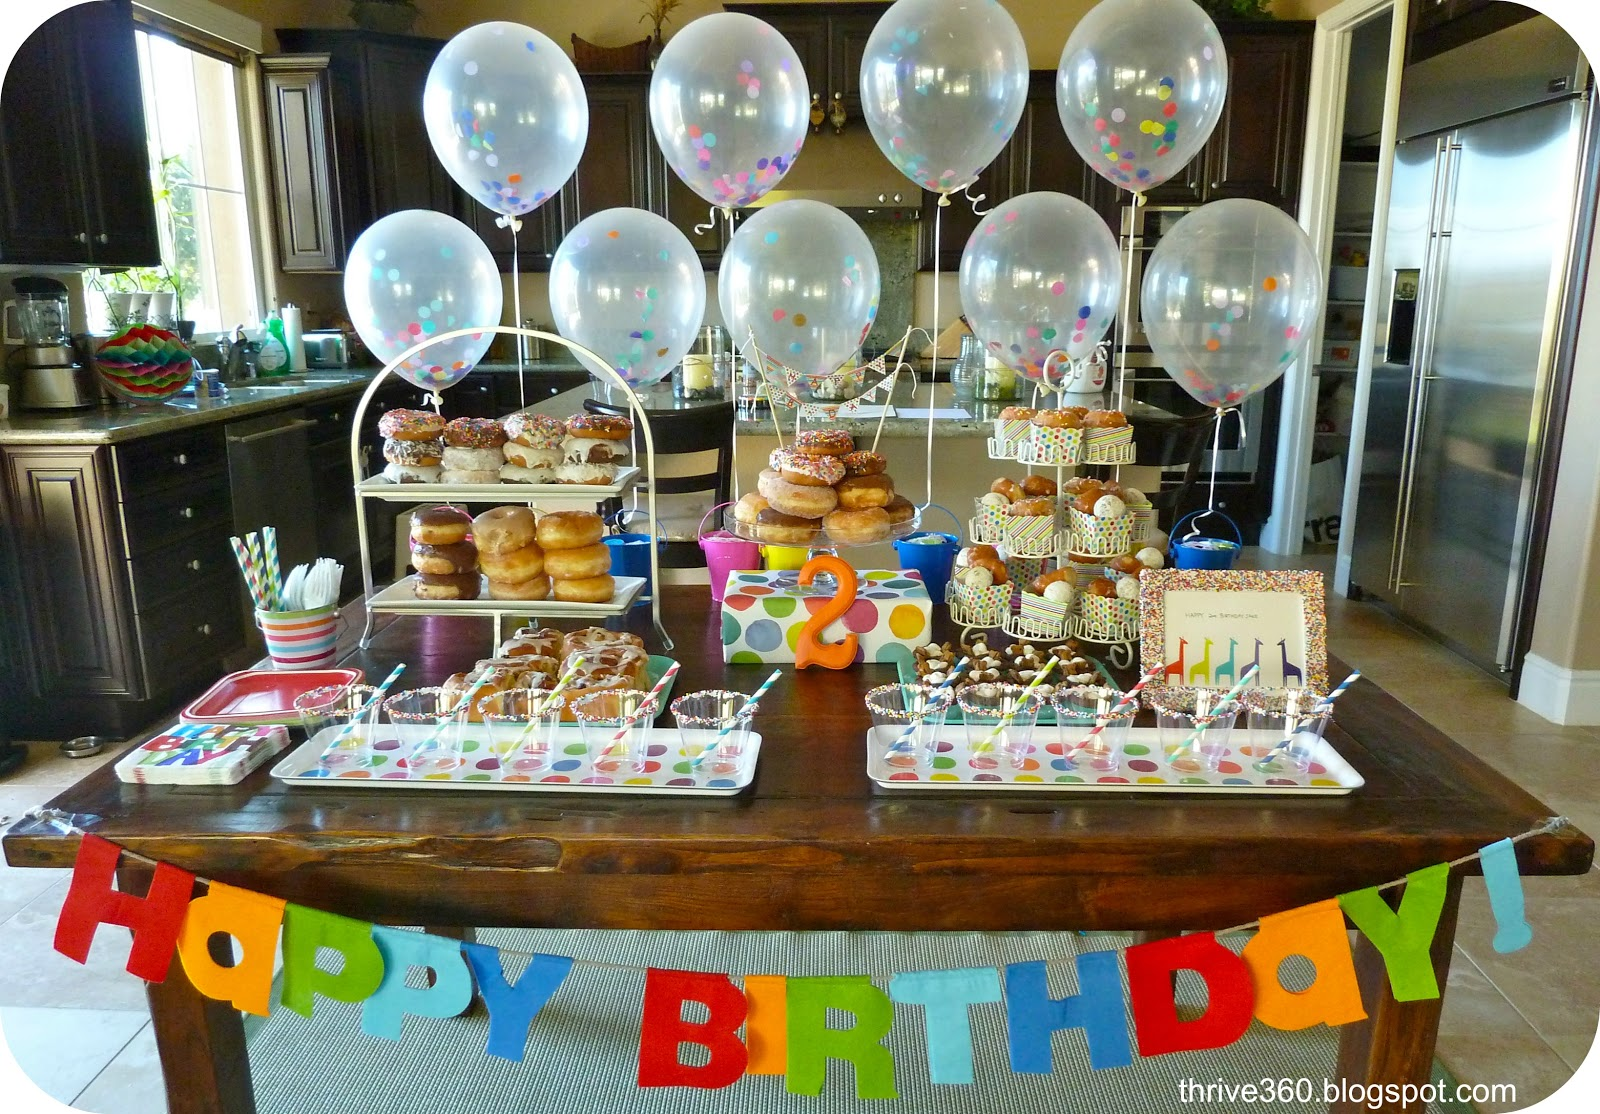 Thrive 360 Living: Birthday Donut Party